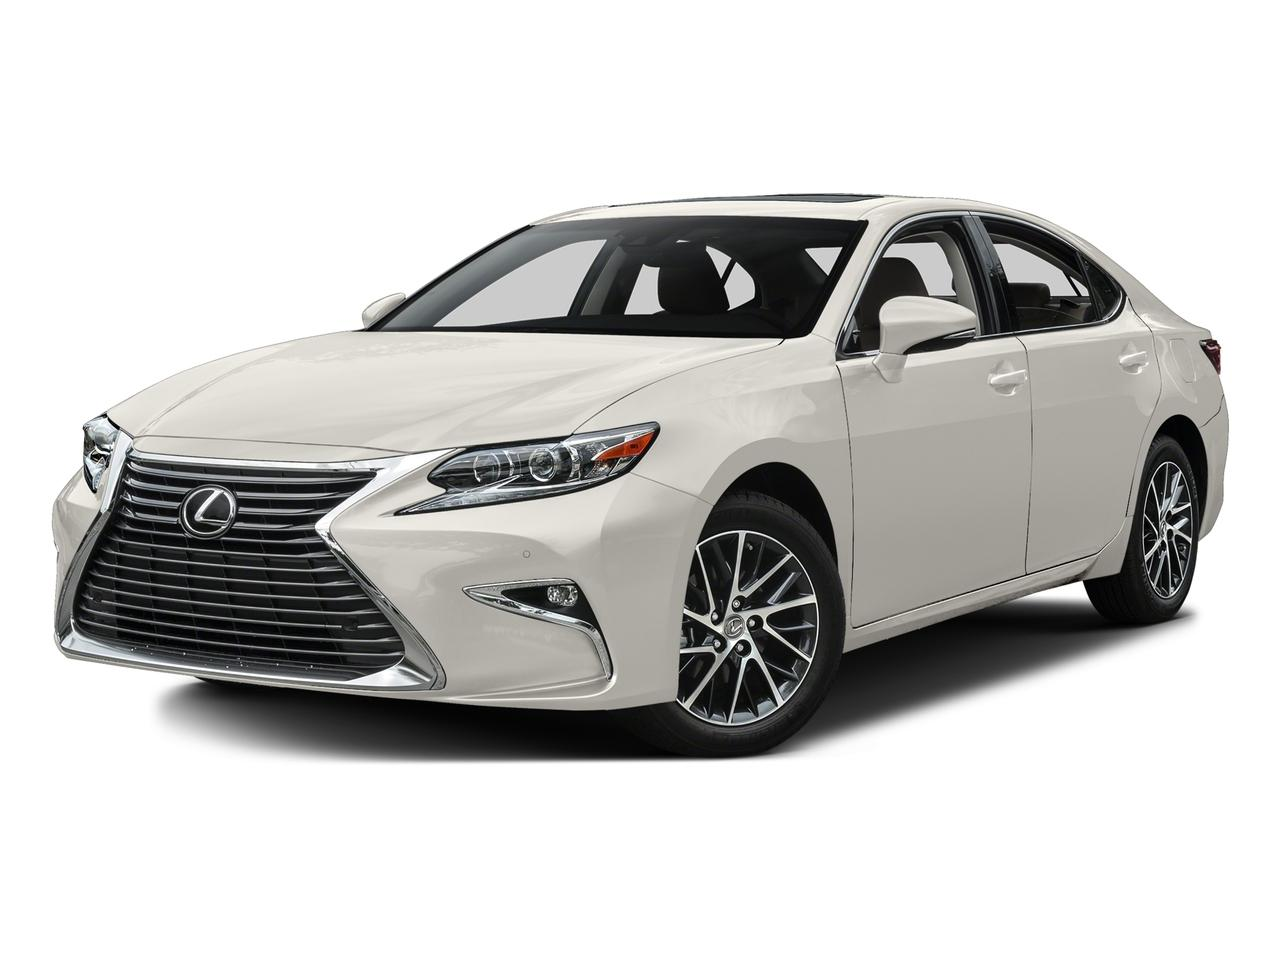 2017 Lexus ES 350 Vehicle Photo in Tucson, AZ 85712